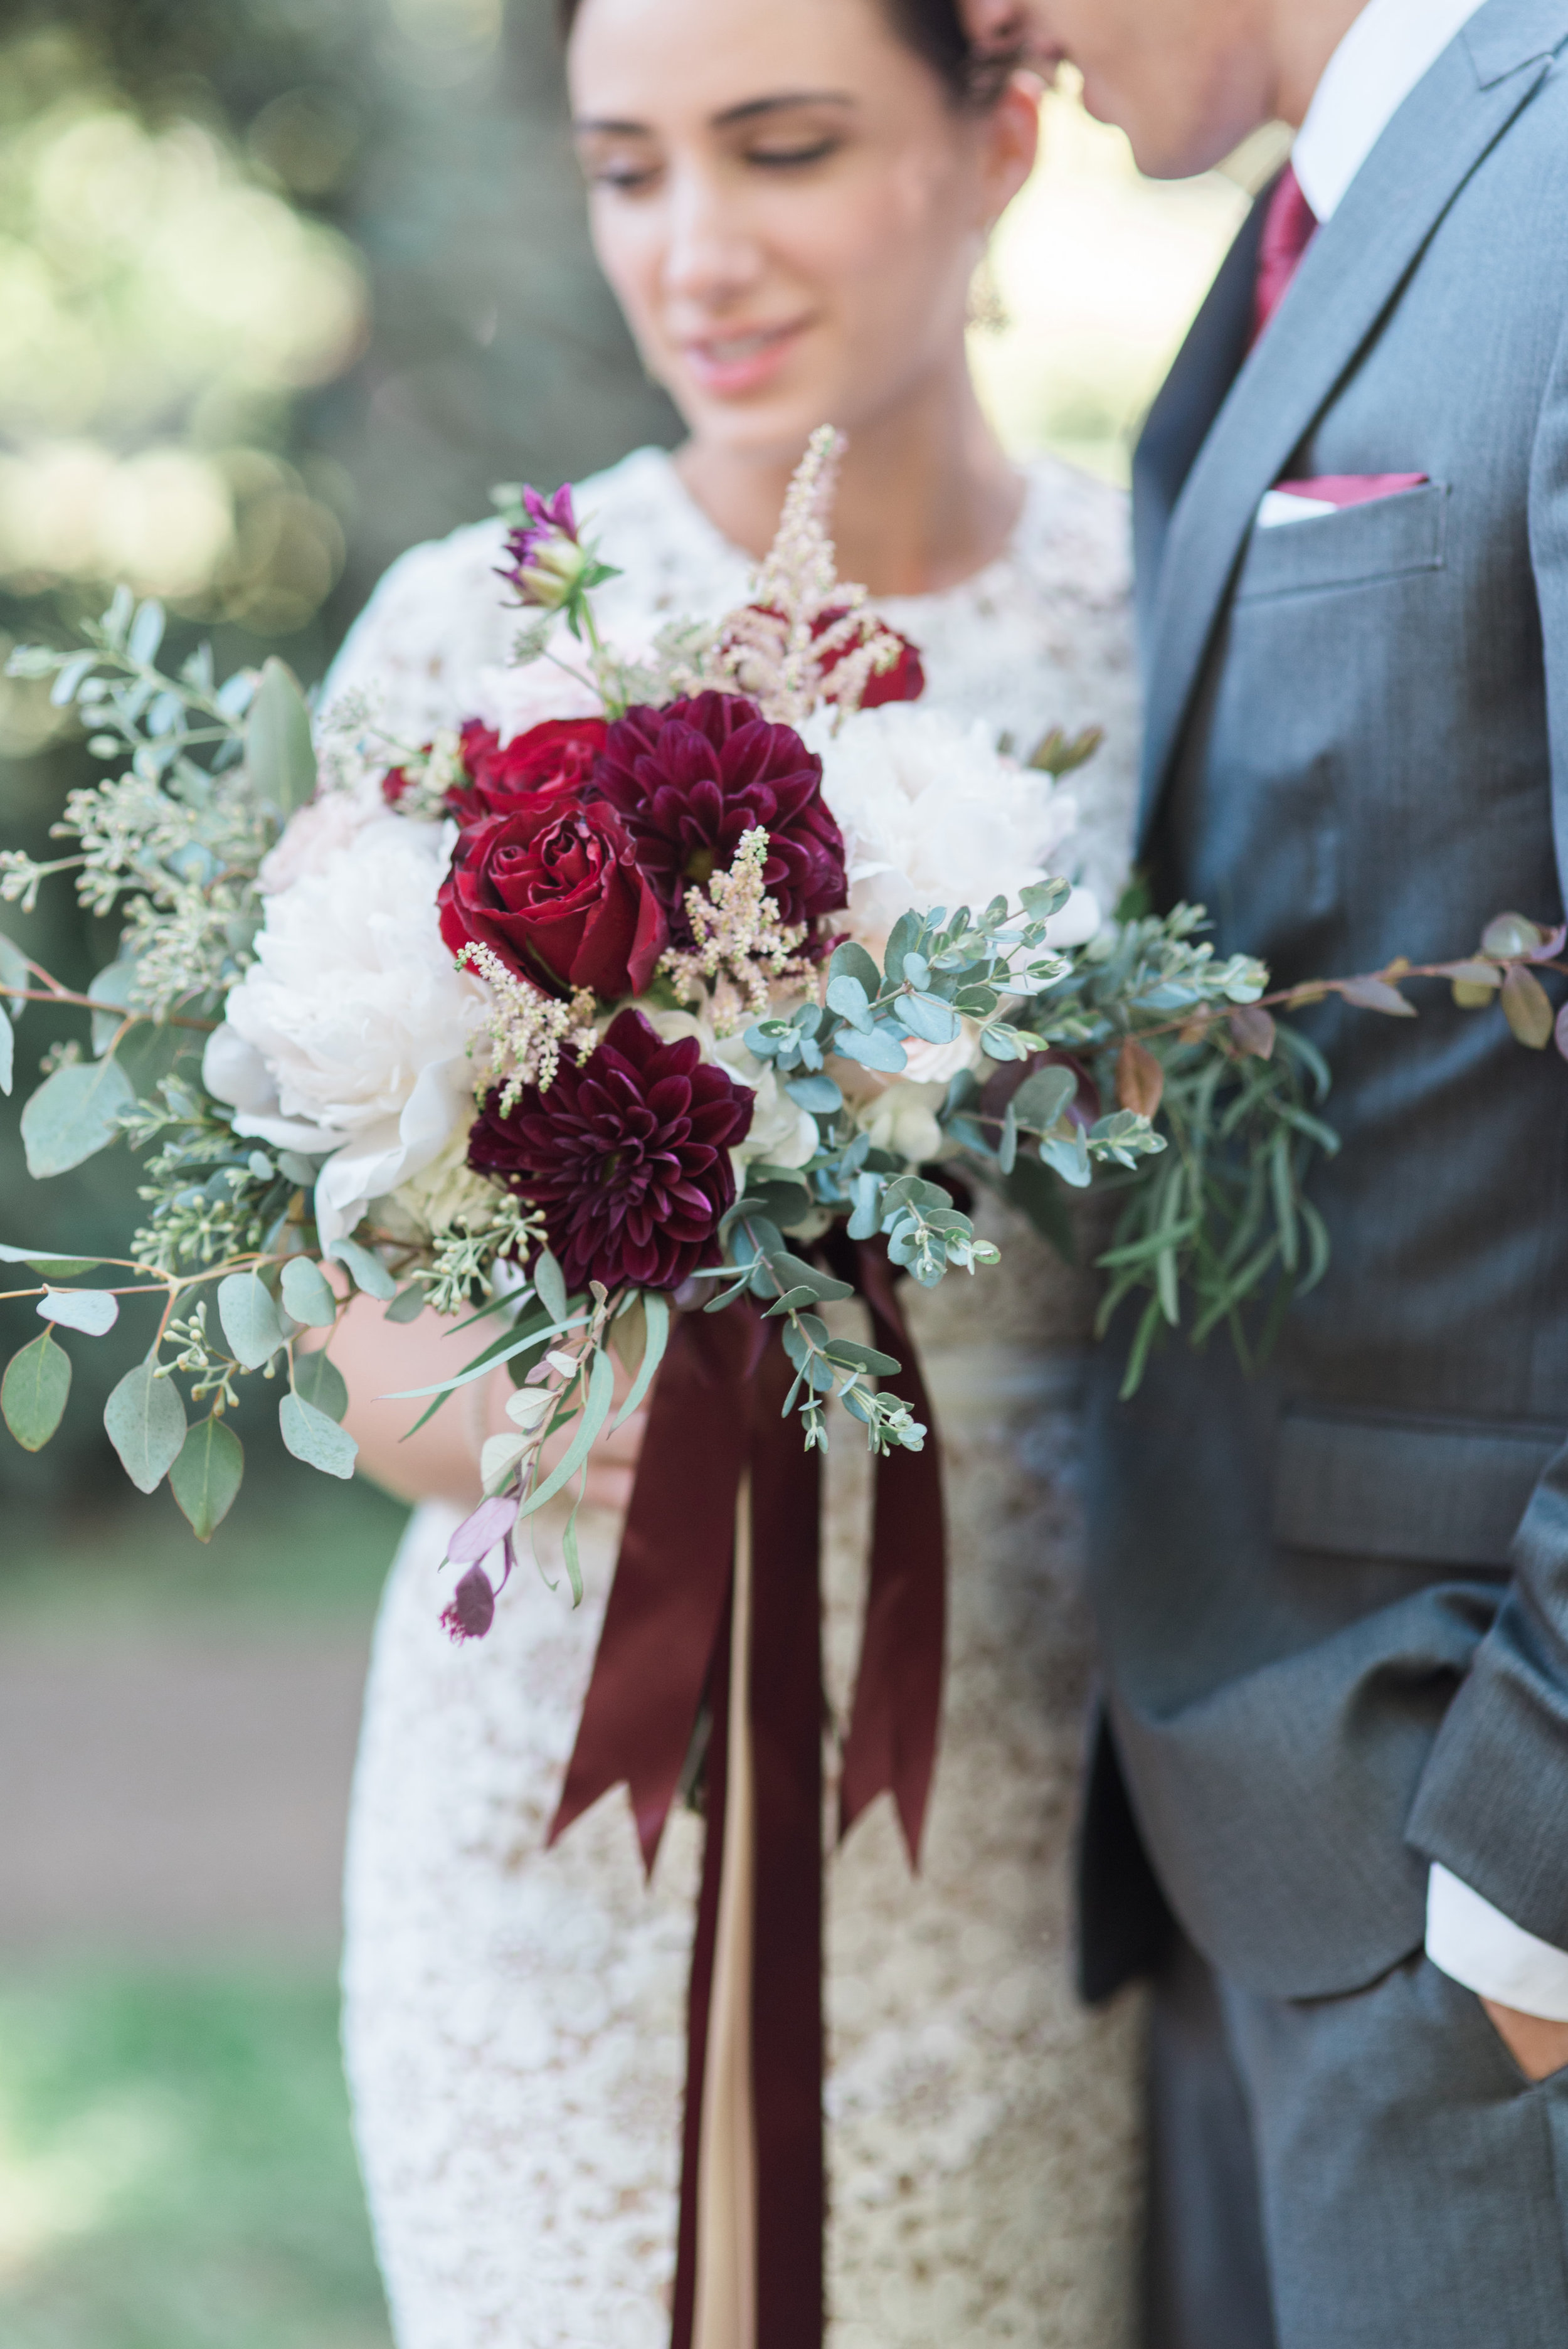 Rustic Outdoor Fall Arlington Virginia Hendry House Wedding with East Made Event Company Baltimore Maryland Washington DC Wedding Planner and ksant photography Richmond Virginia Wedding Photographer 23.jpg